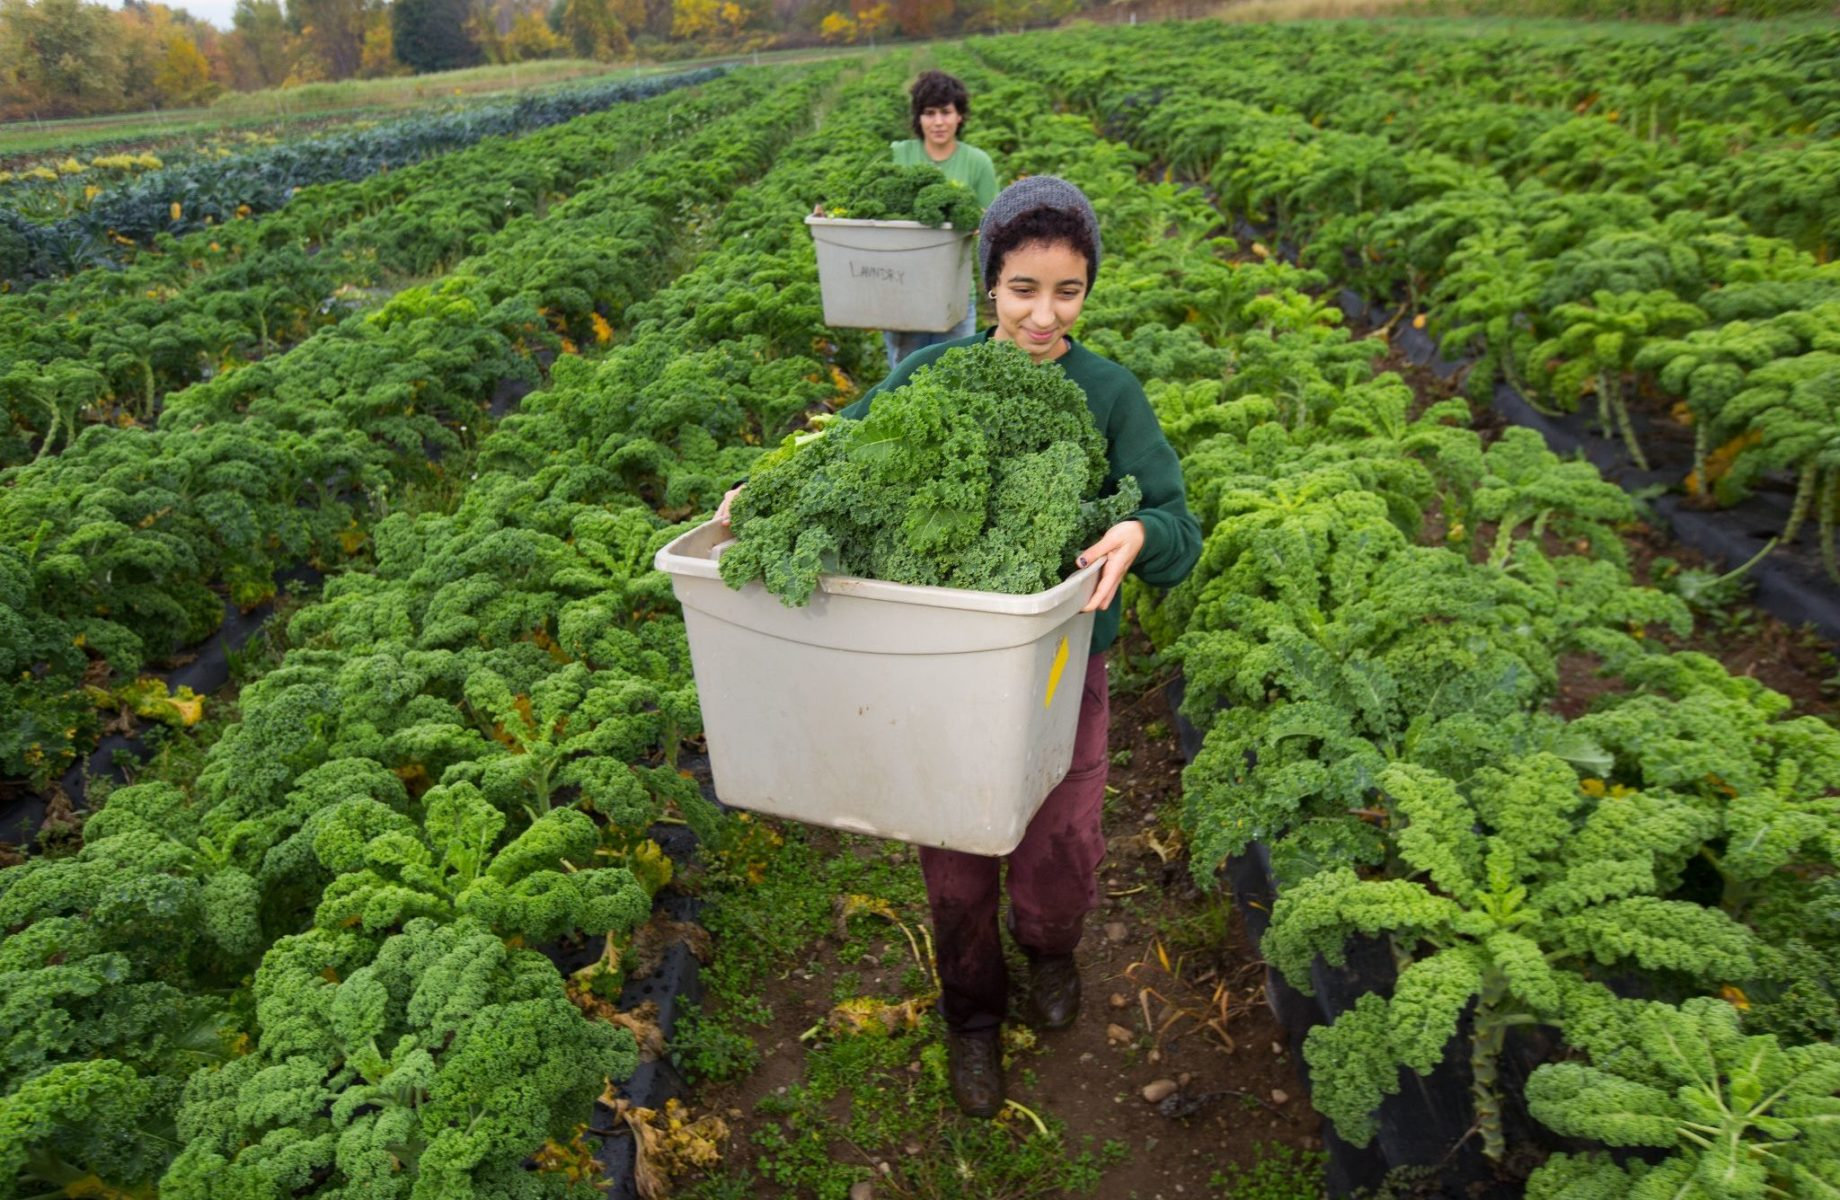 Two people in field of kale holding white bins with kale